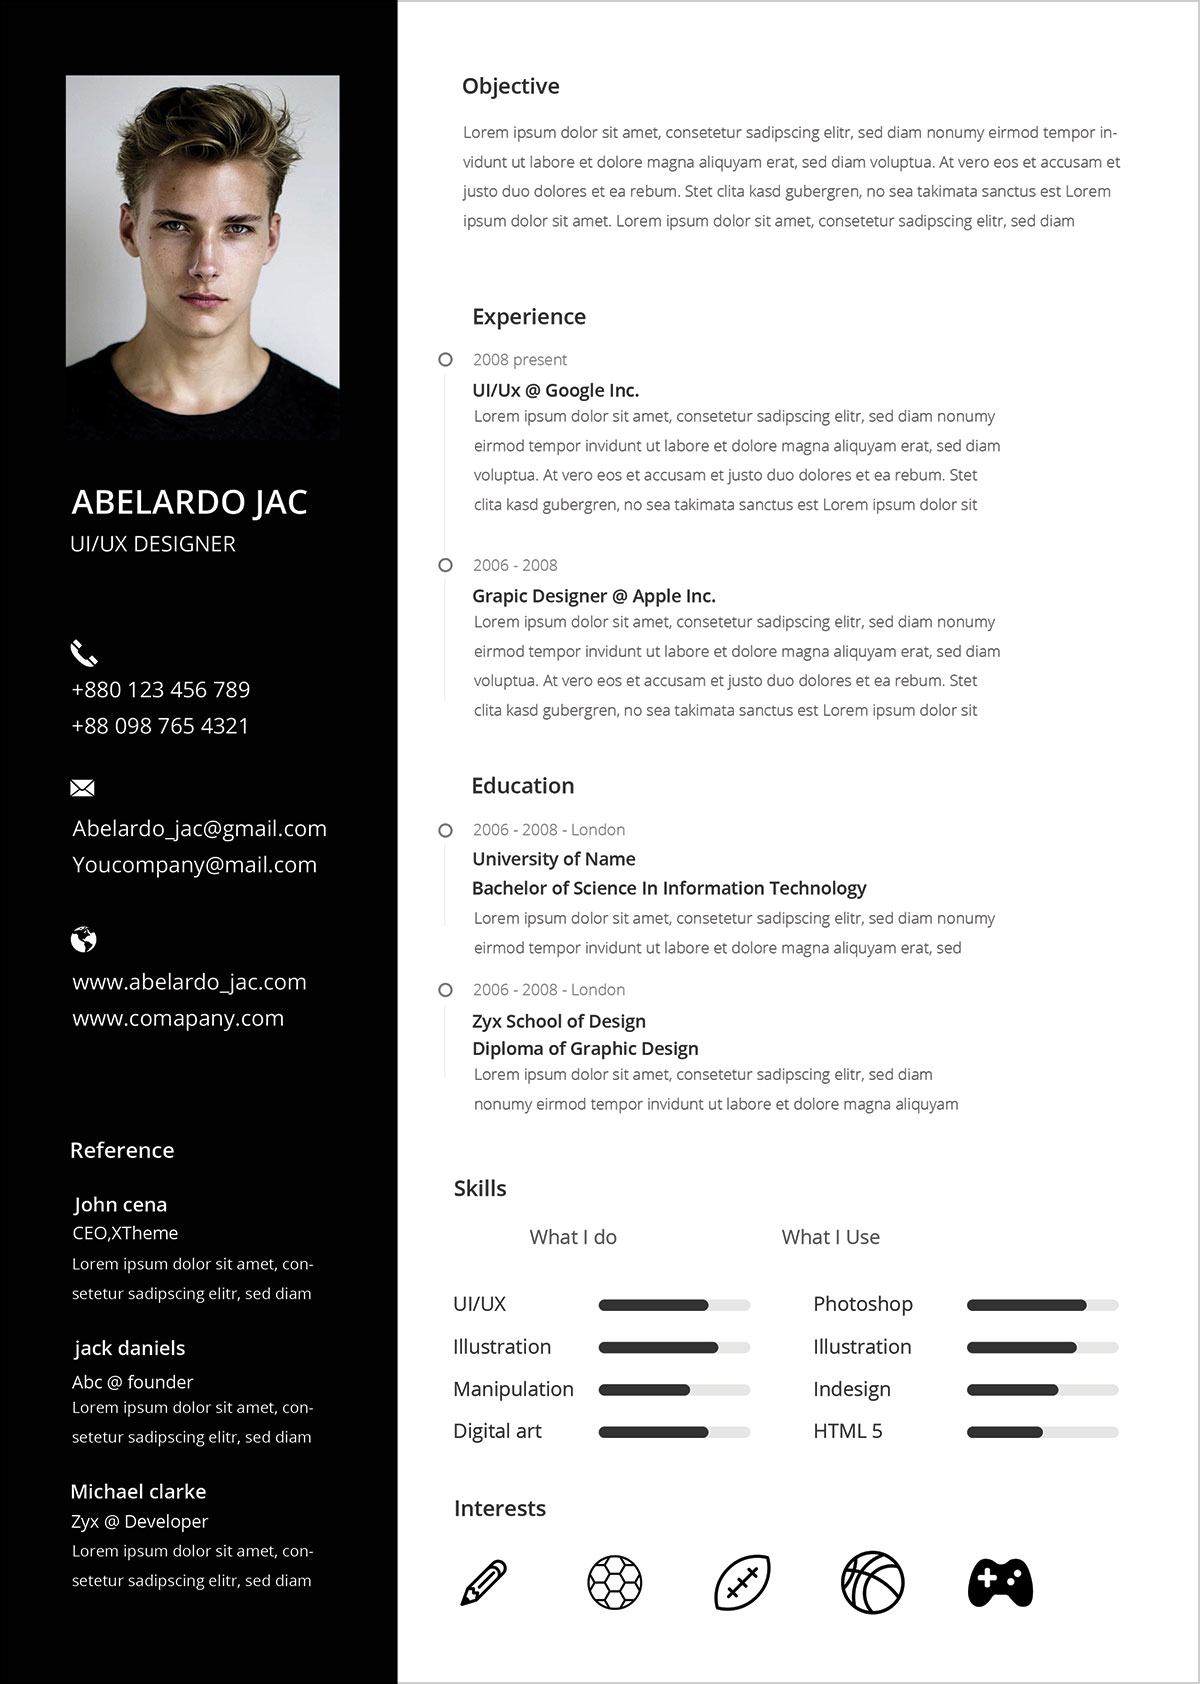 Free-PSD-CV-Template-Design-for-Web-Designers